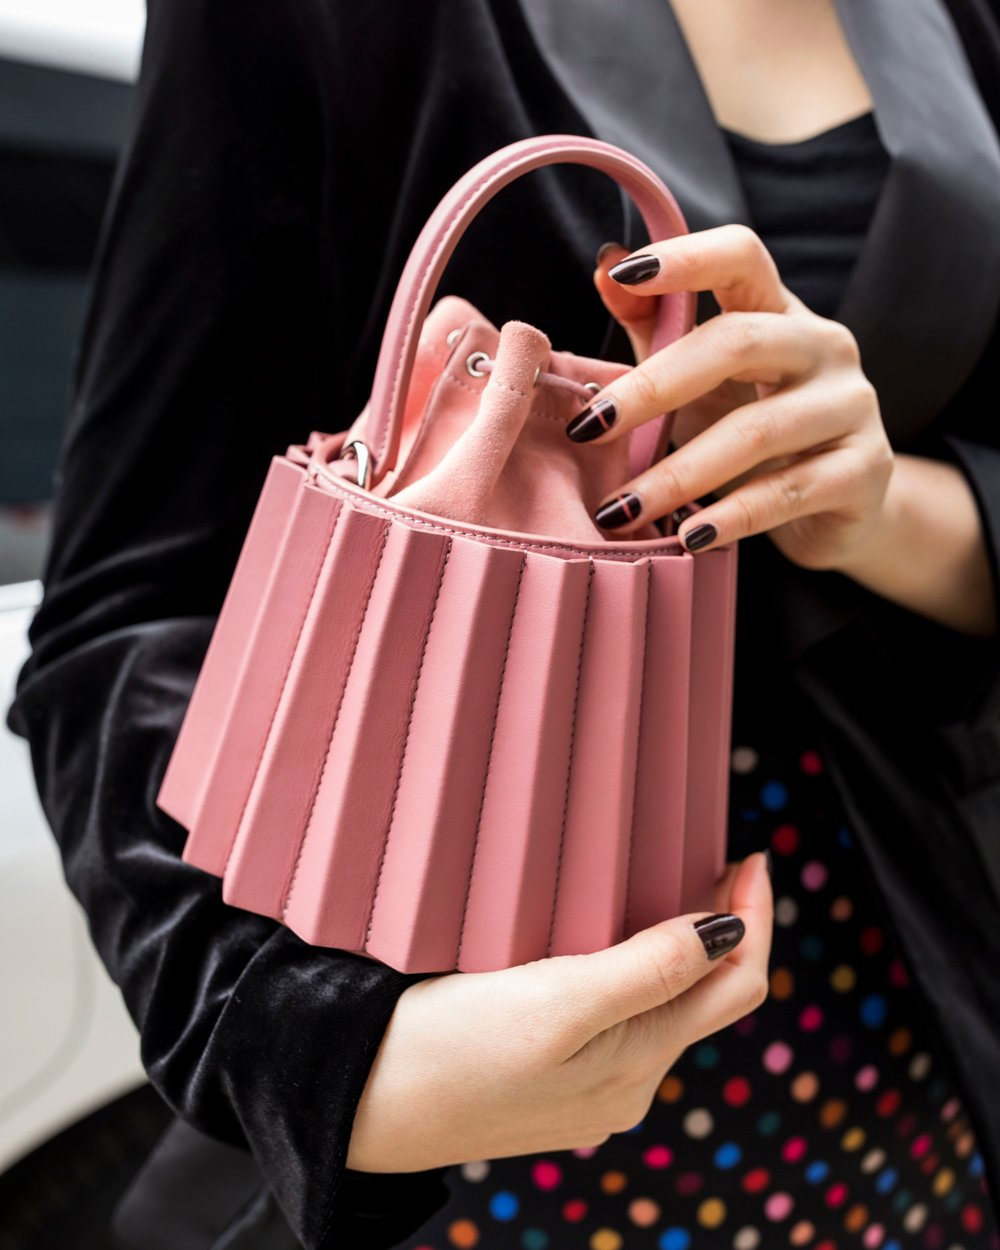 My pink lantern bag is from  mlouye , a bag brand I recently discovered. Nails were done at the non-toxic nail salon called  N Square  in Chelsea. Photo by Ashley Gallerani.